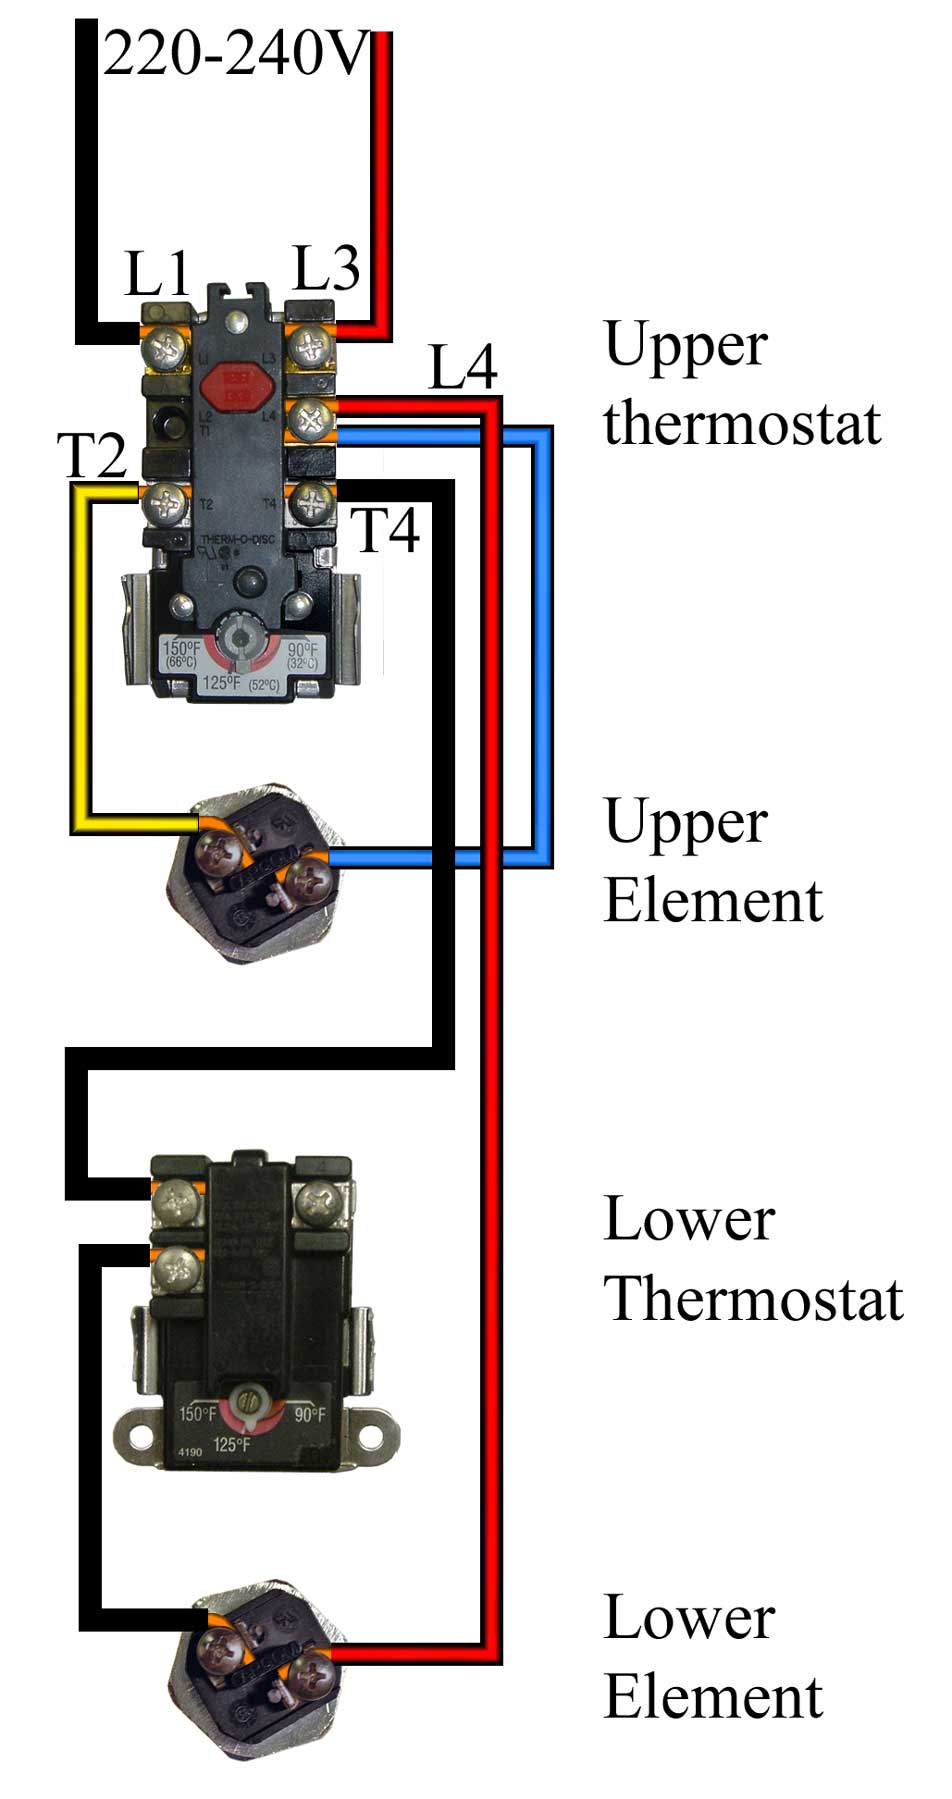 Water heater wiring w num10 how to wire water heater thermostat heating element wiring diagram at creativeand.co